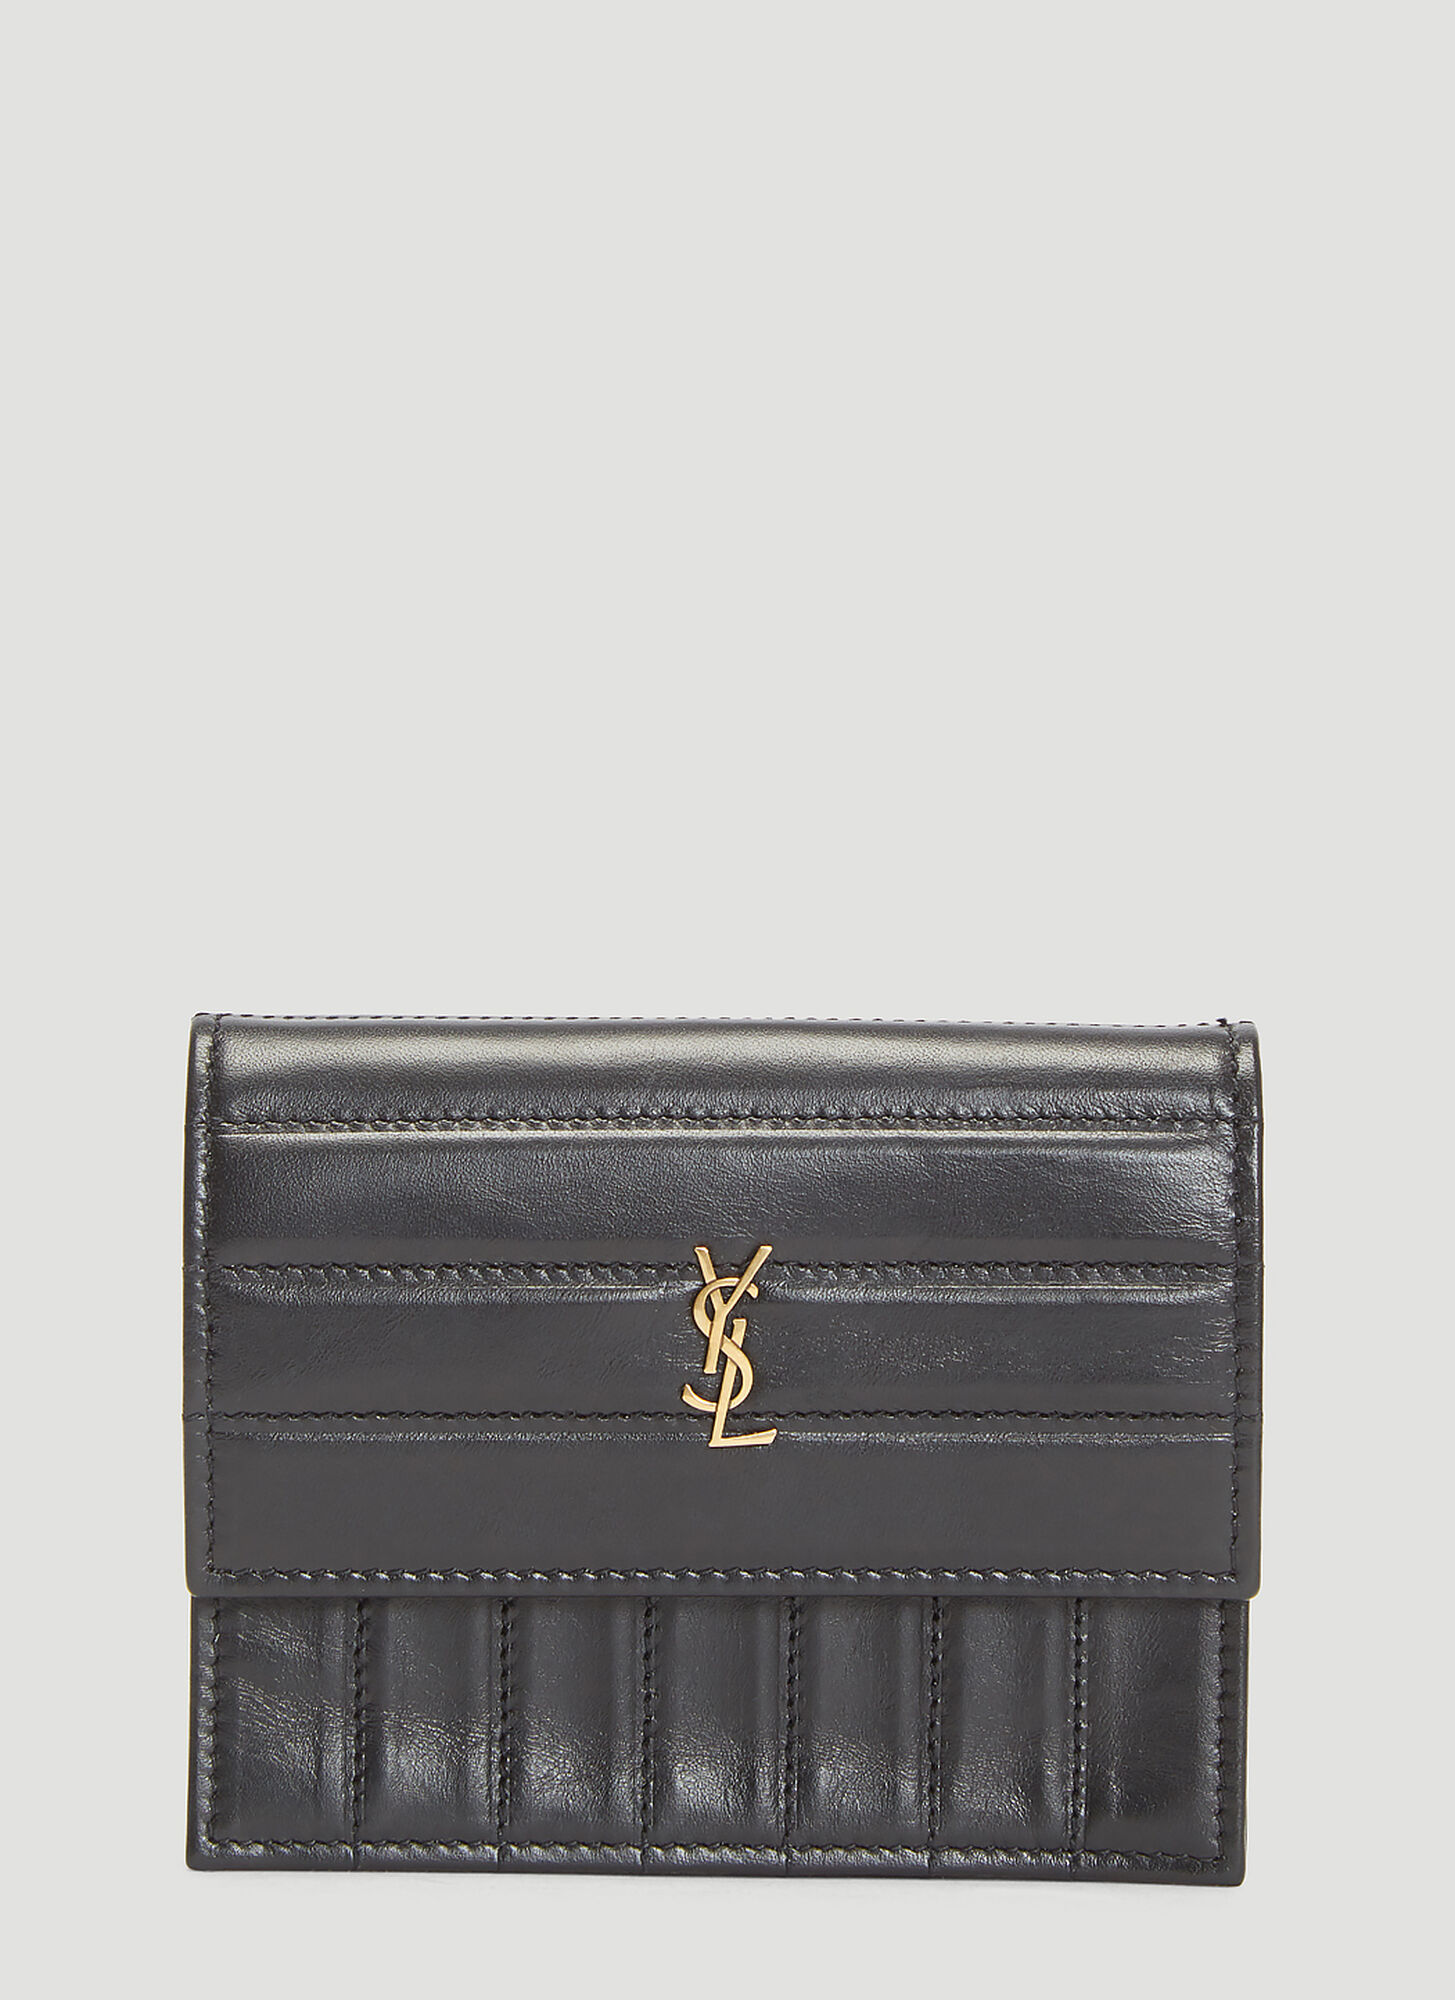 Saint Laurent Crinkled Victoire Wallet in Black